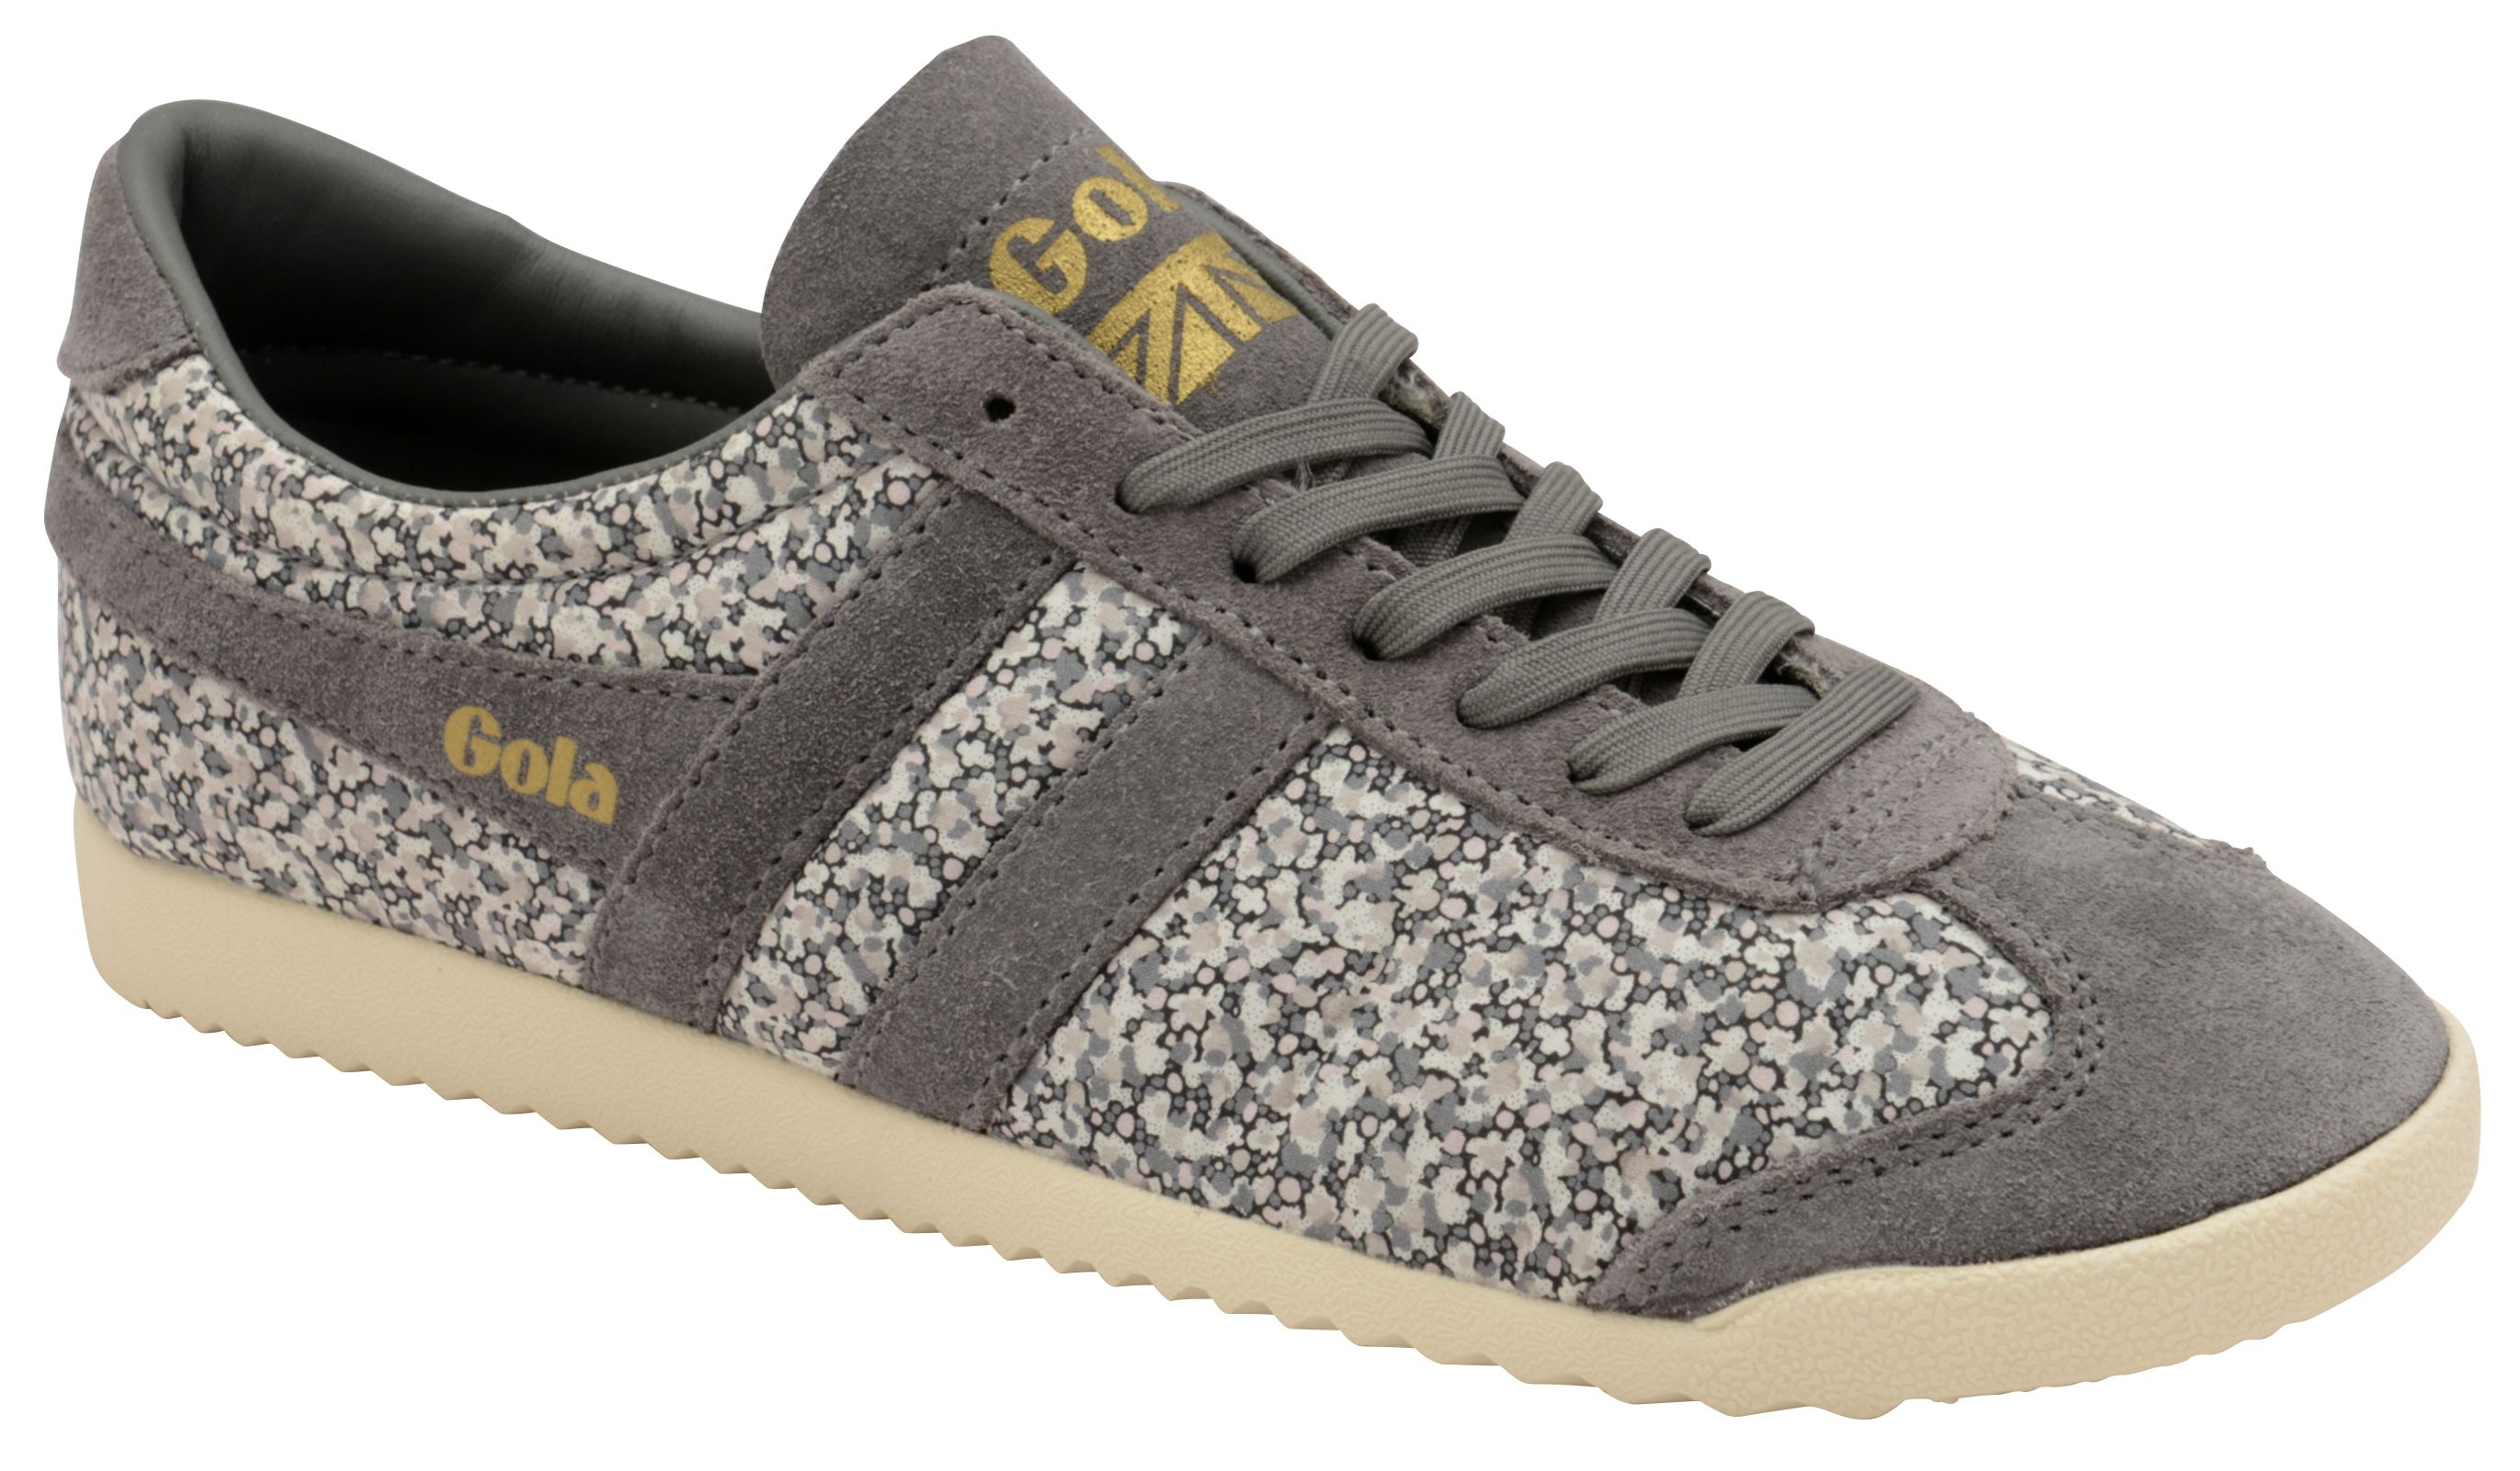 Gola Bullet Liberty Pp Lace Up Trainers, Grey